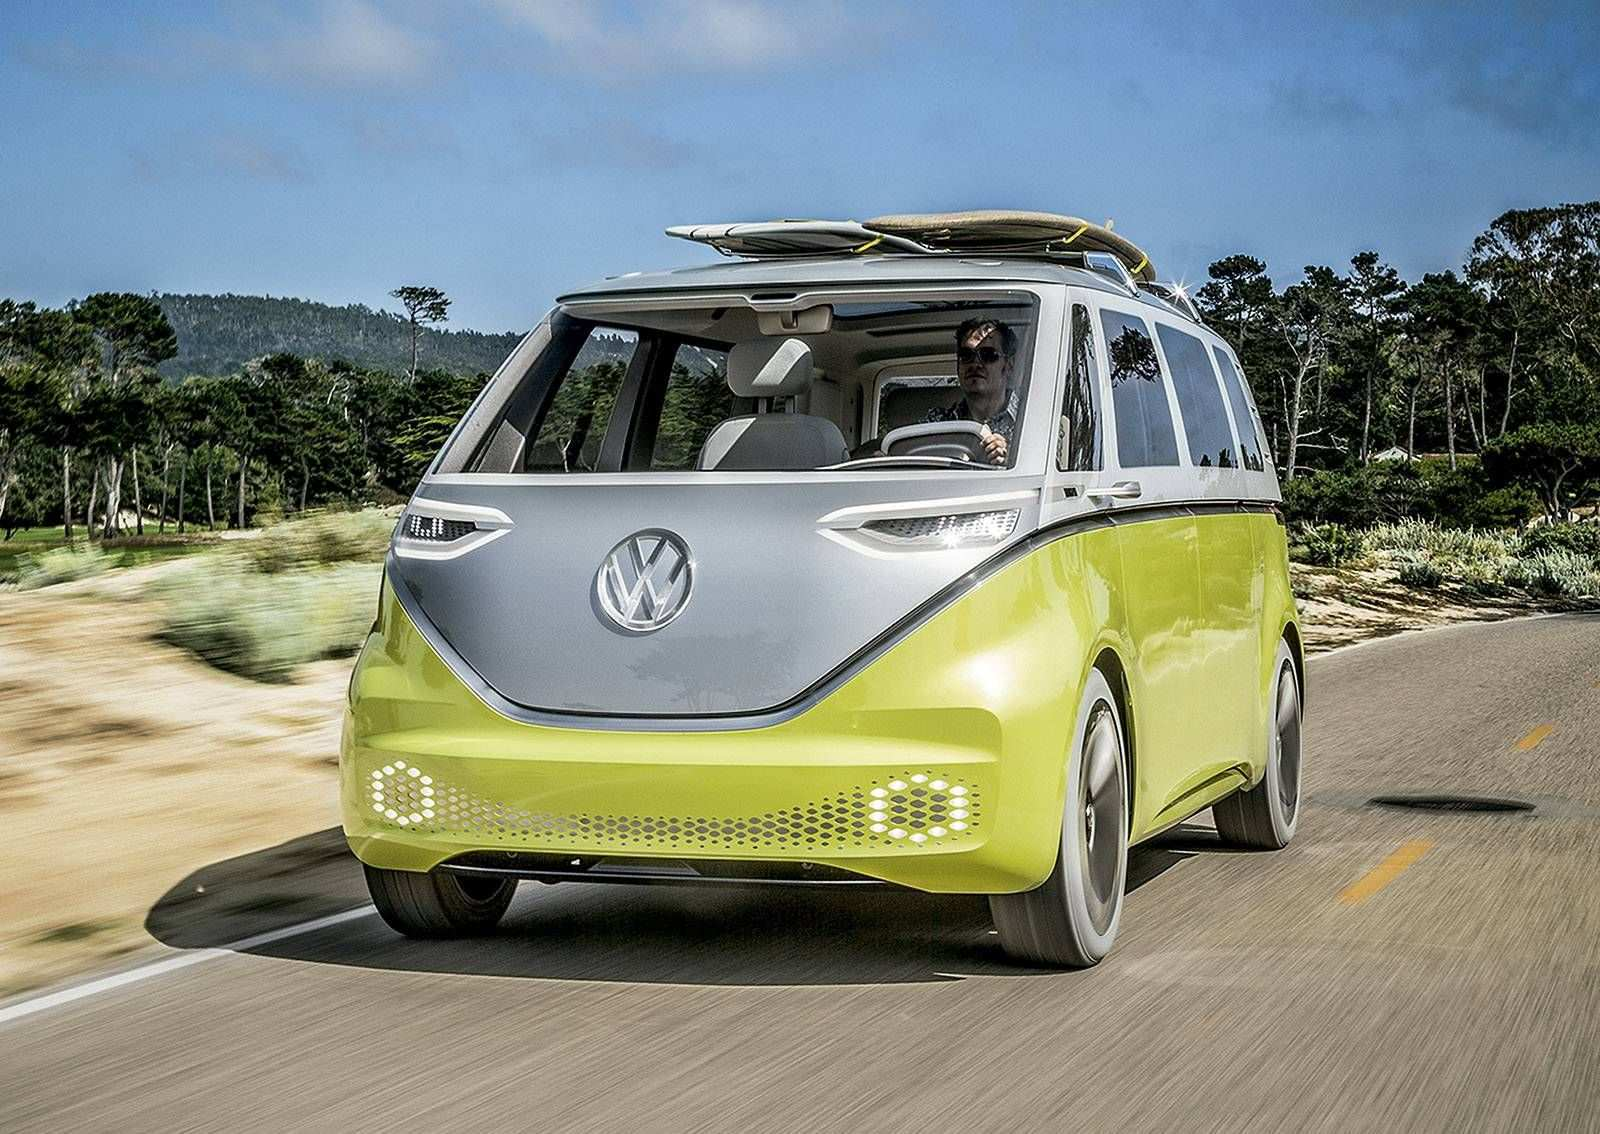 17 New Vw Kombi 2019 History by Vw Kombi 2019